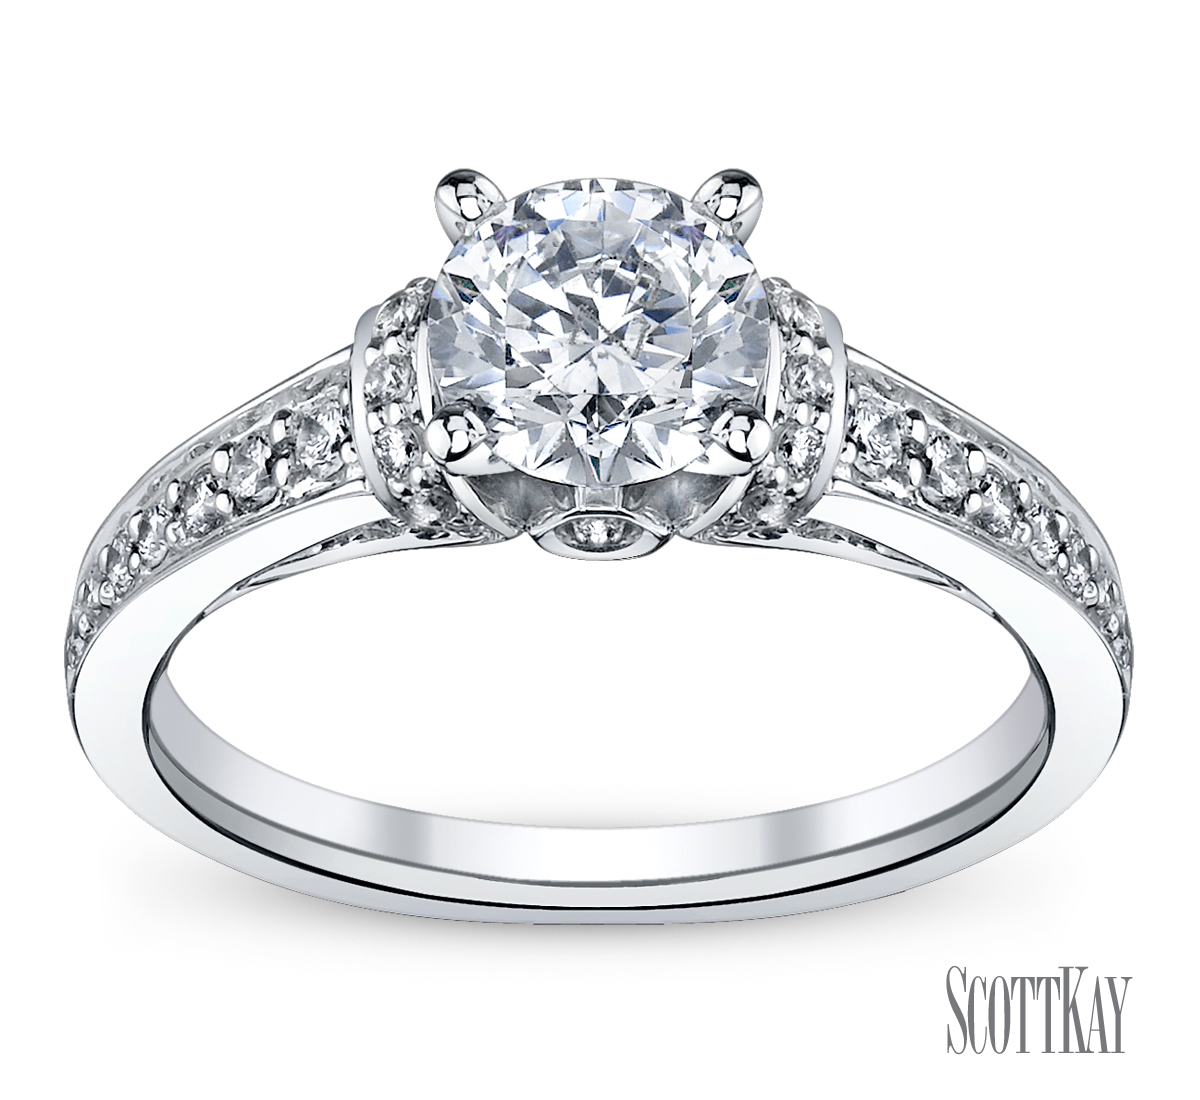 Family Co Jewelers Scott Kay B1602r310: Engagement Ring Of The Day-Scott Kay